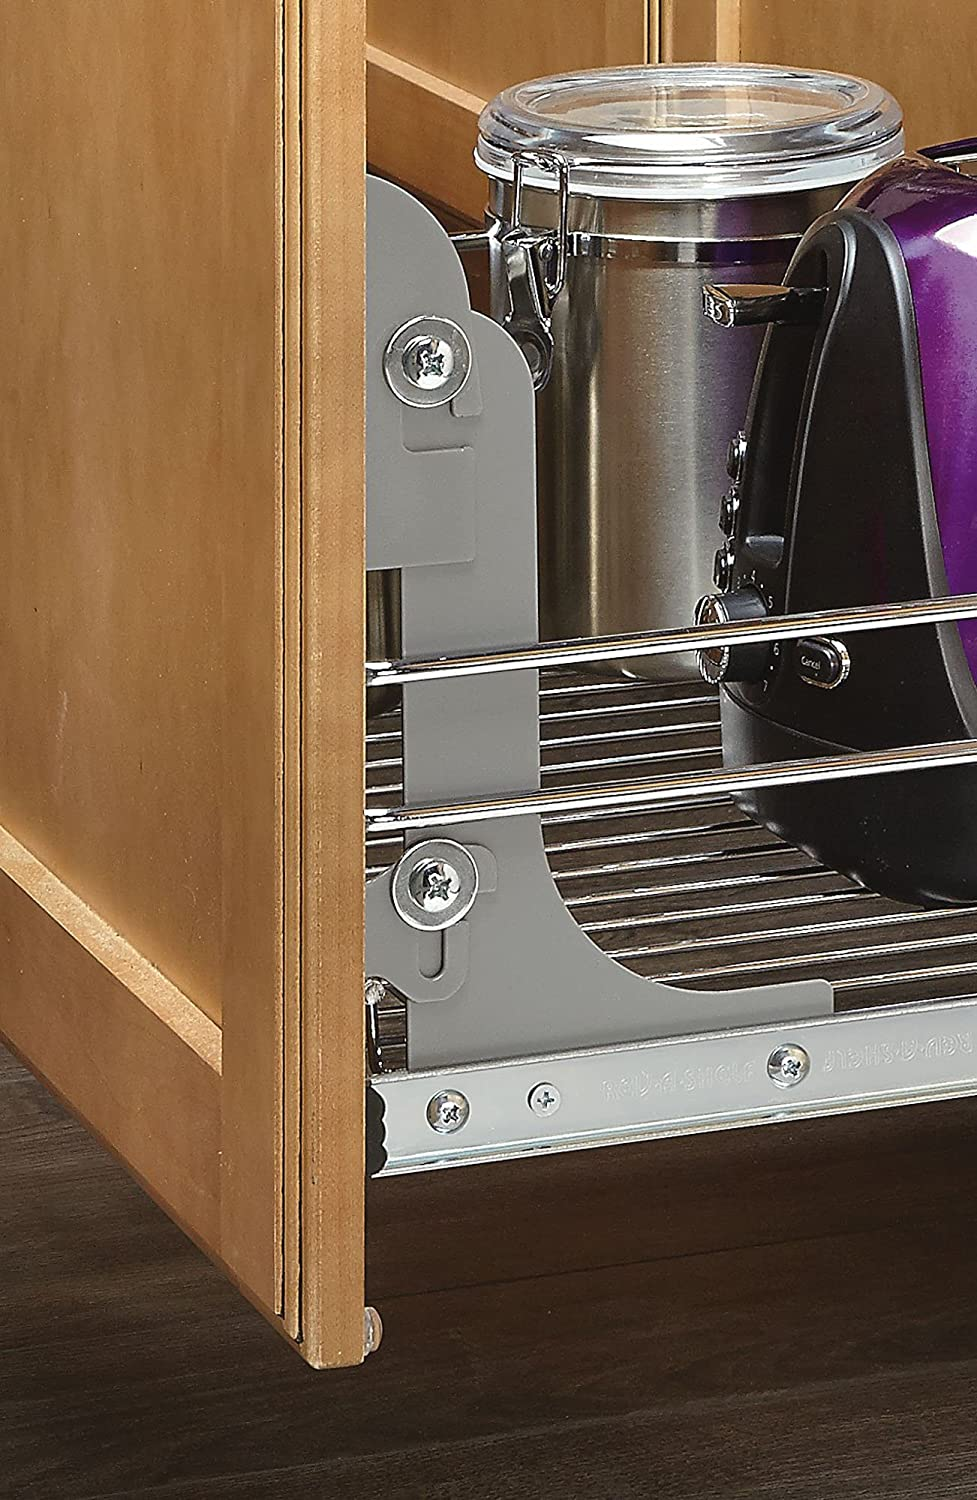 Rev a shelf door mount kit - Amazon Com Rev A Shelf 5wb1 0918 Cr 9 In W X 18 In D Base Cabinet Pull Out Chrome Wire Basket Home Kitchen